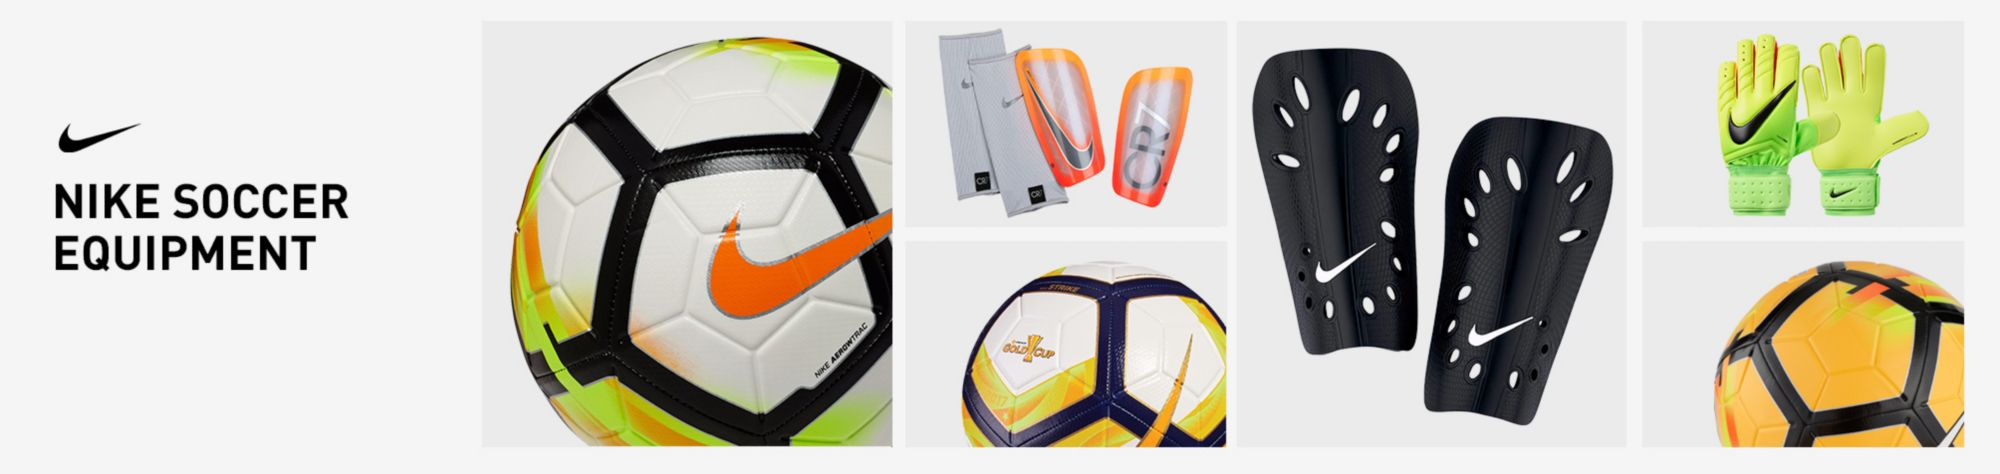 Nike Soccer Balls, Shins, & Gloves